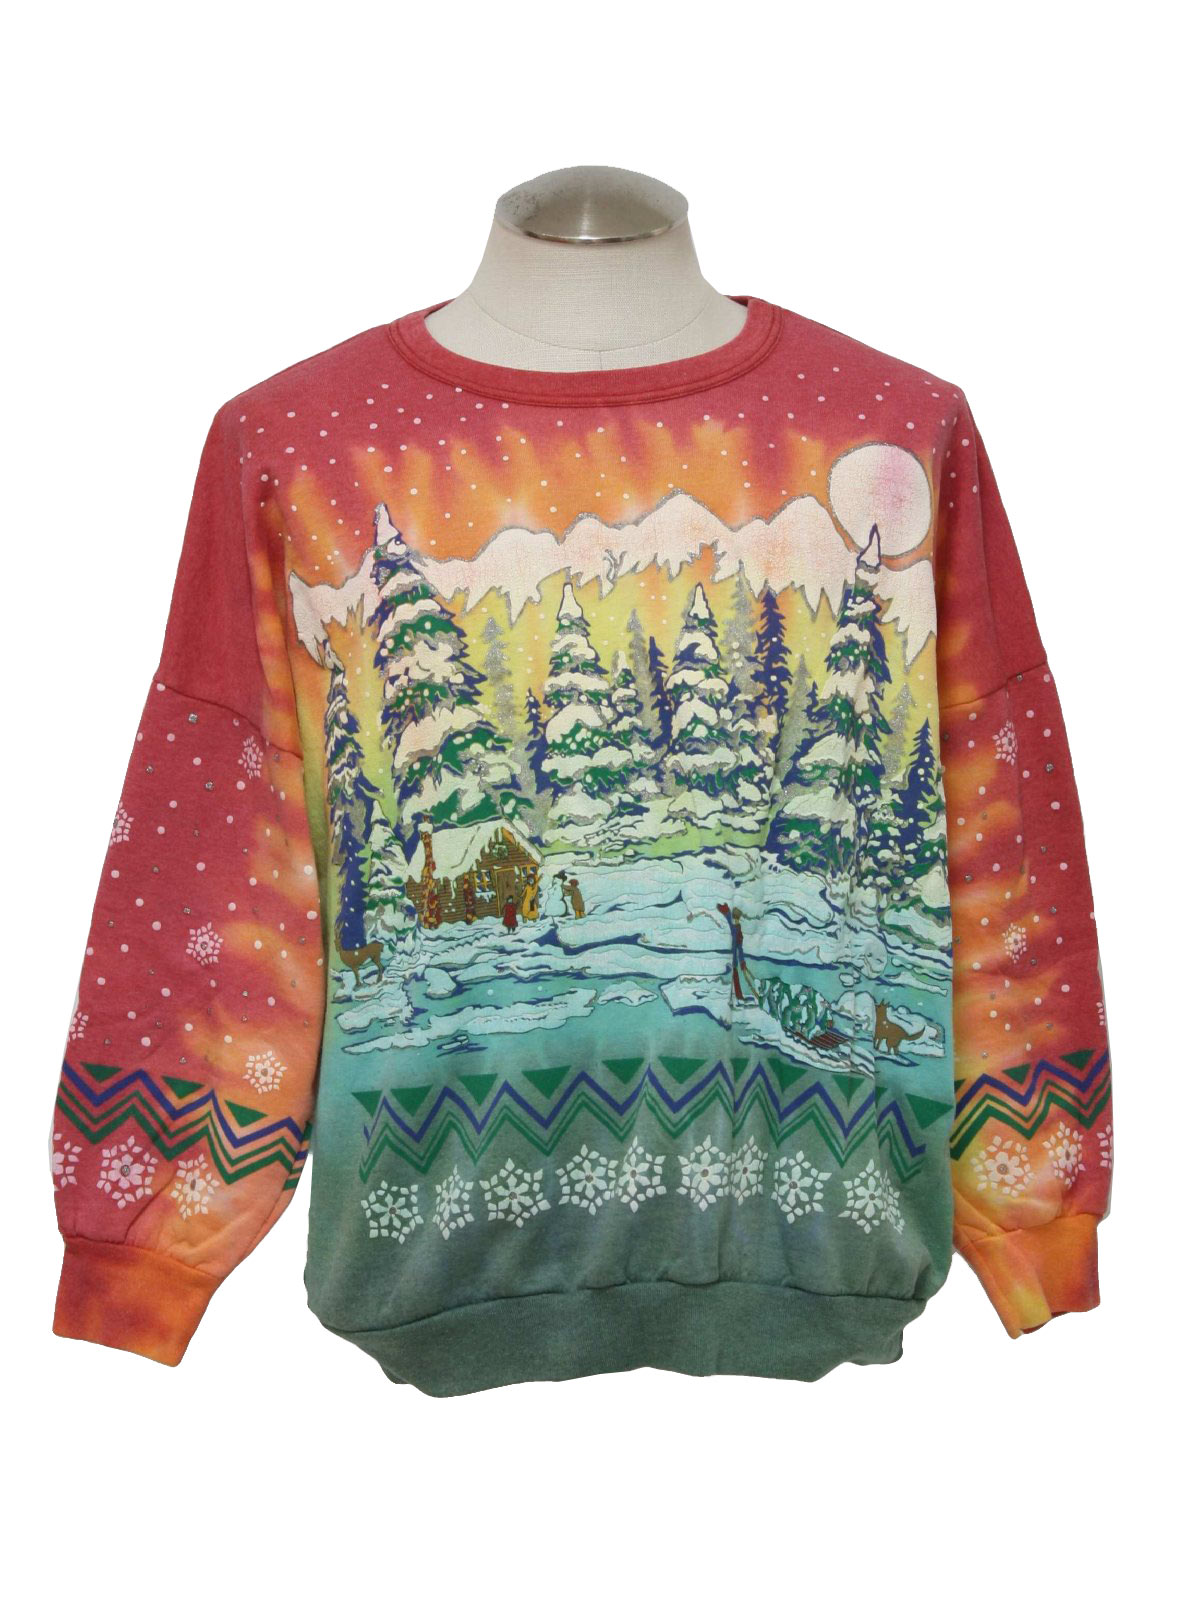 unisex tie dyed ugly christmas sweatshirt 80s holiday time unisex tie ...